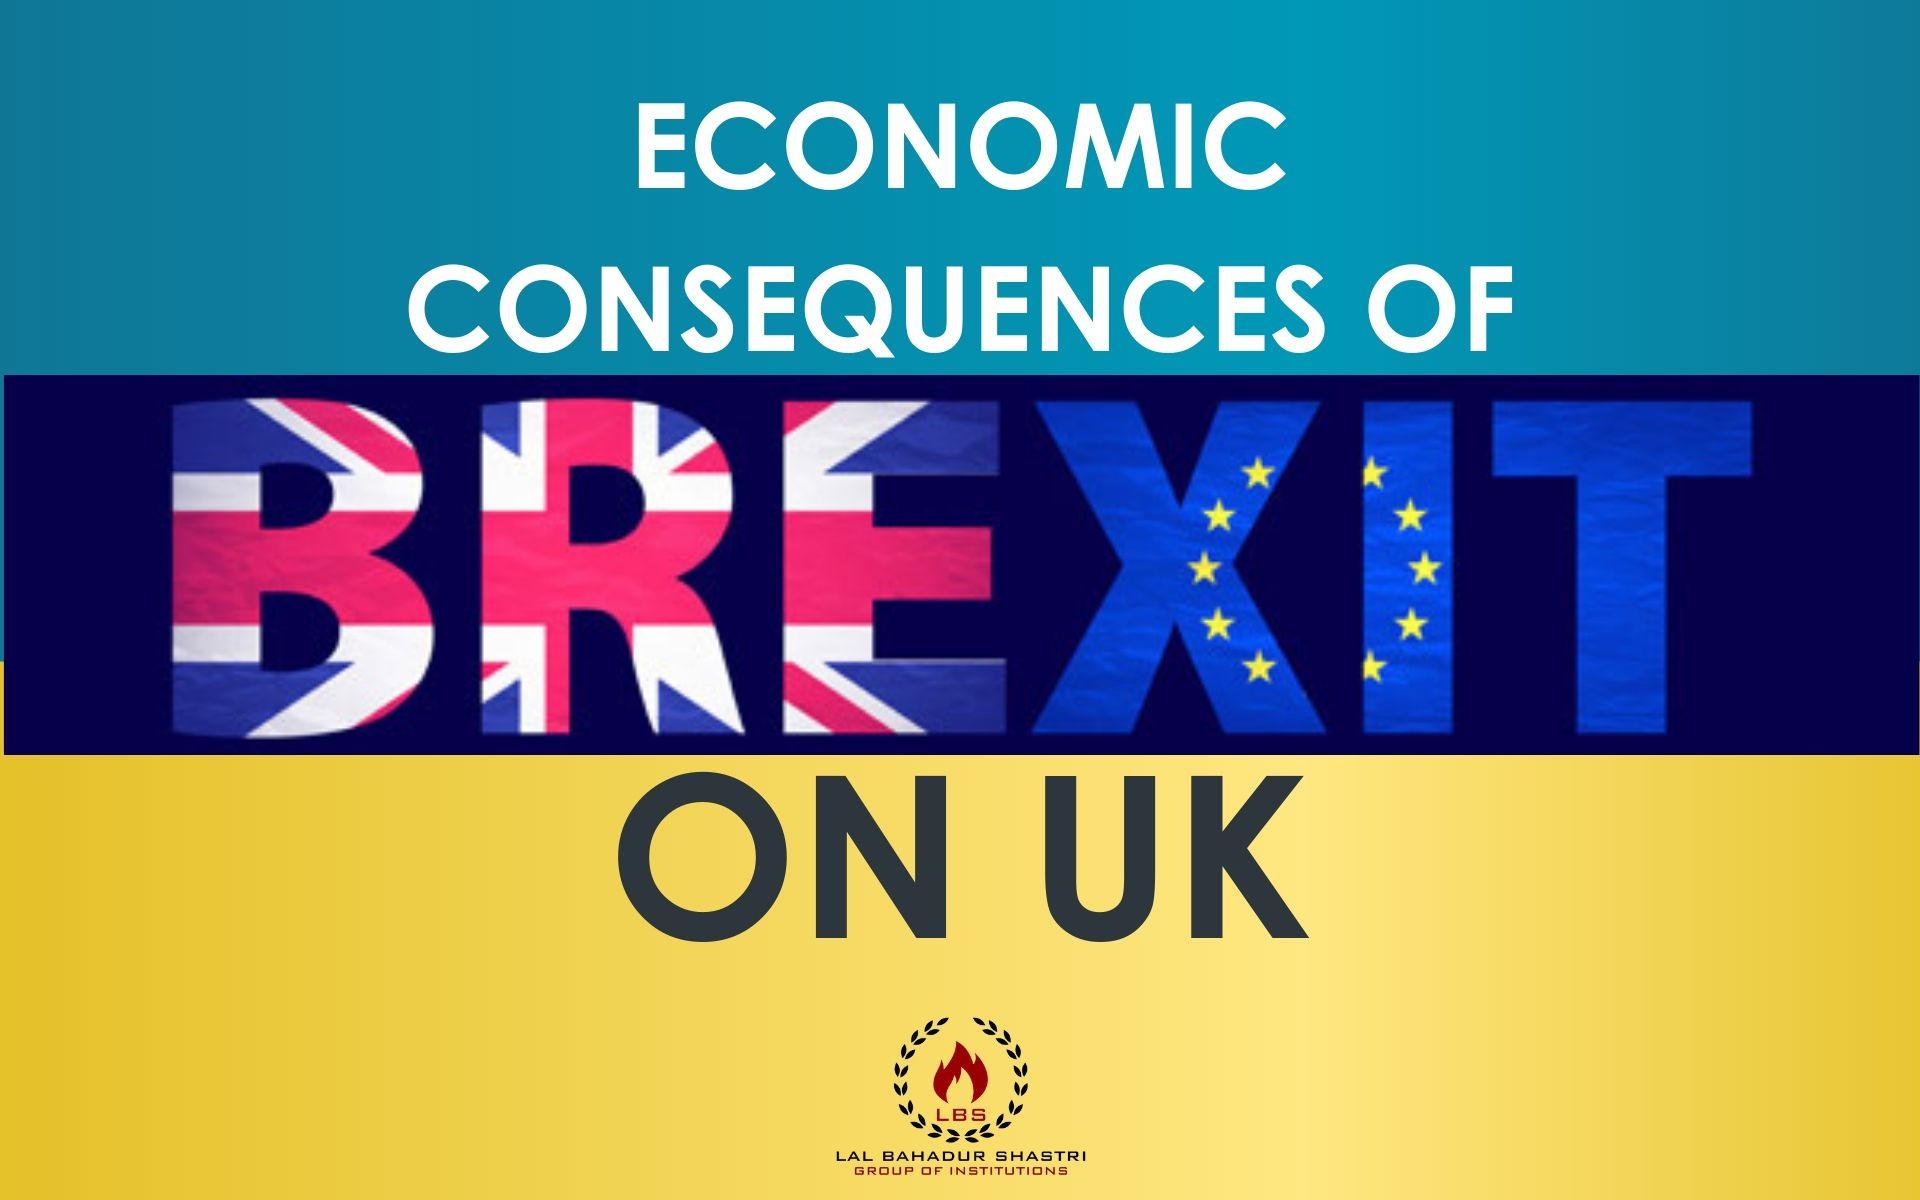 Economic Consequences of Brexit on UK